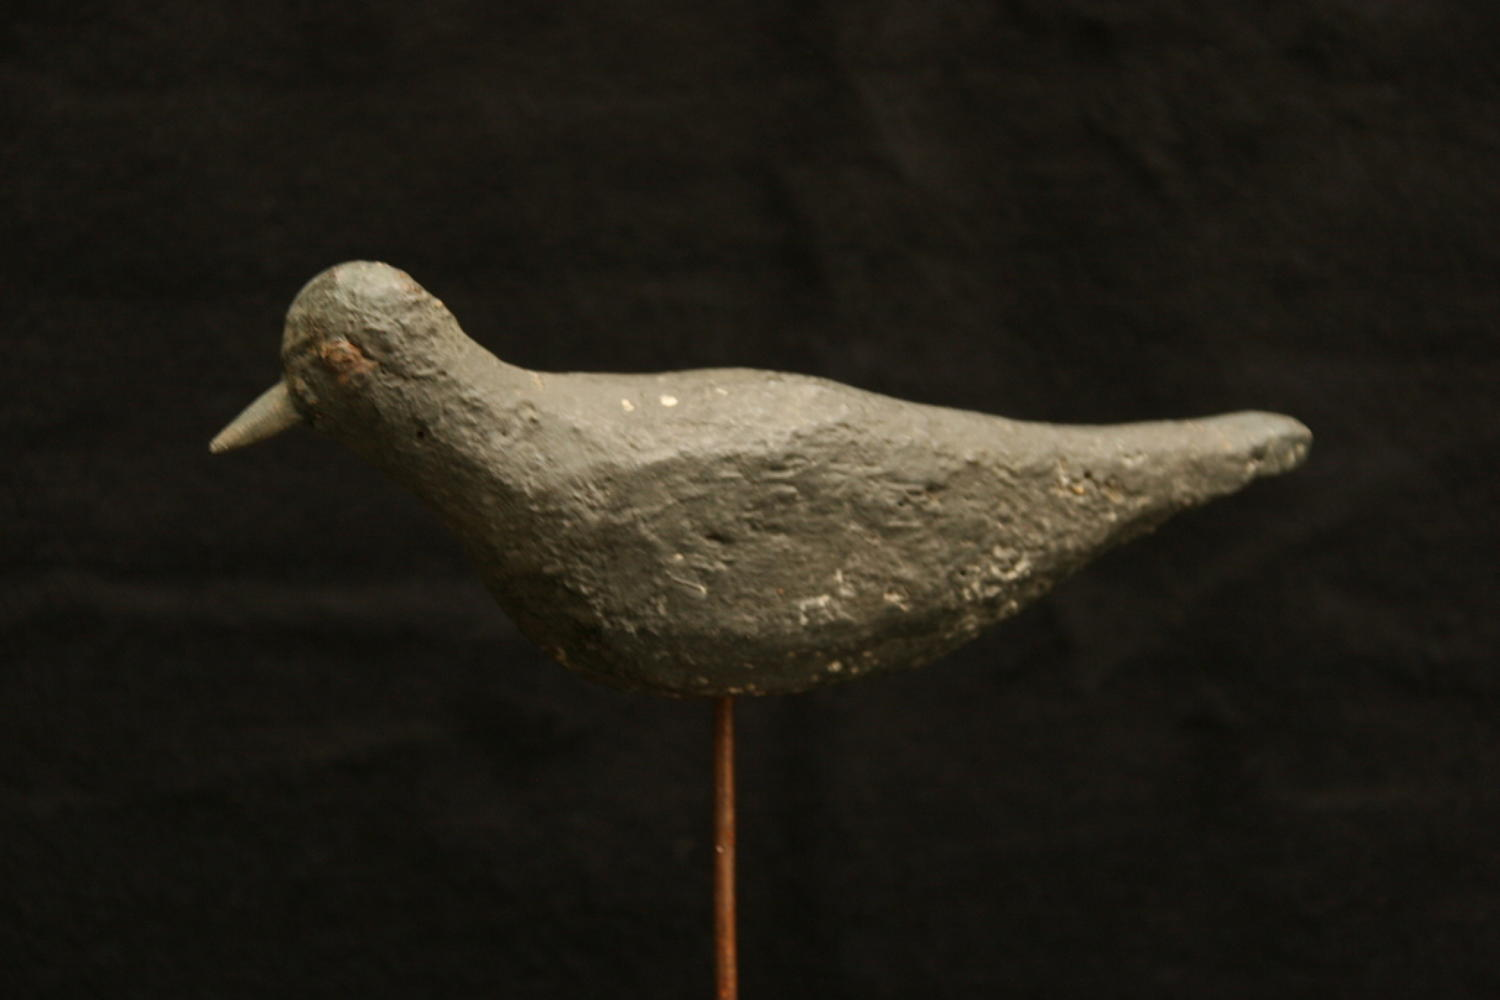 French Decoy Shore bird 1 of 4 similar